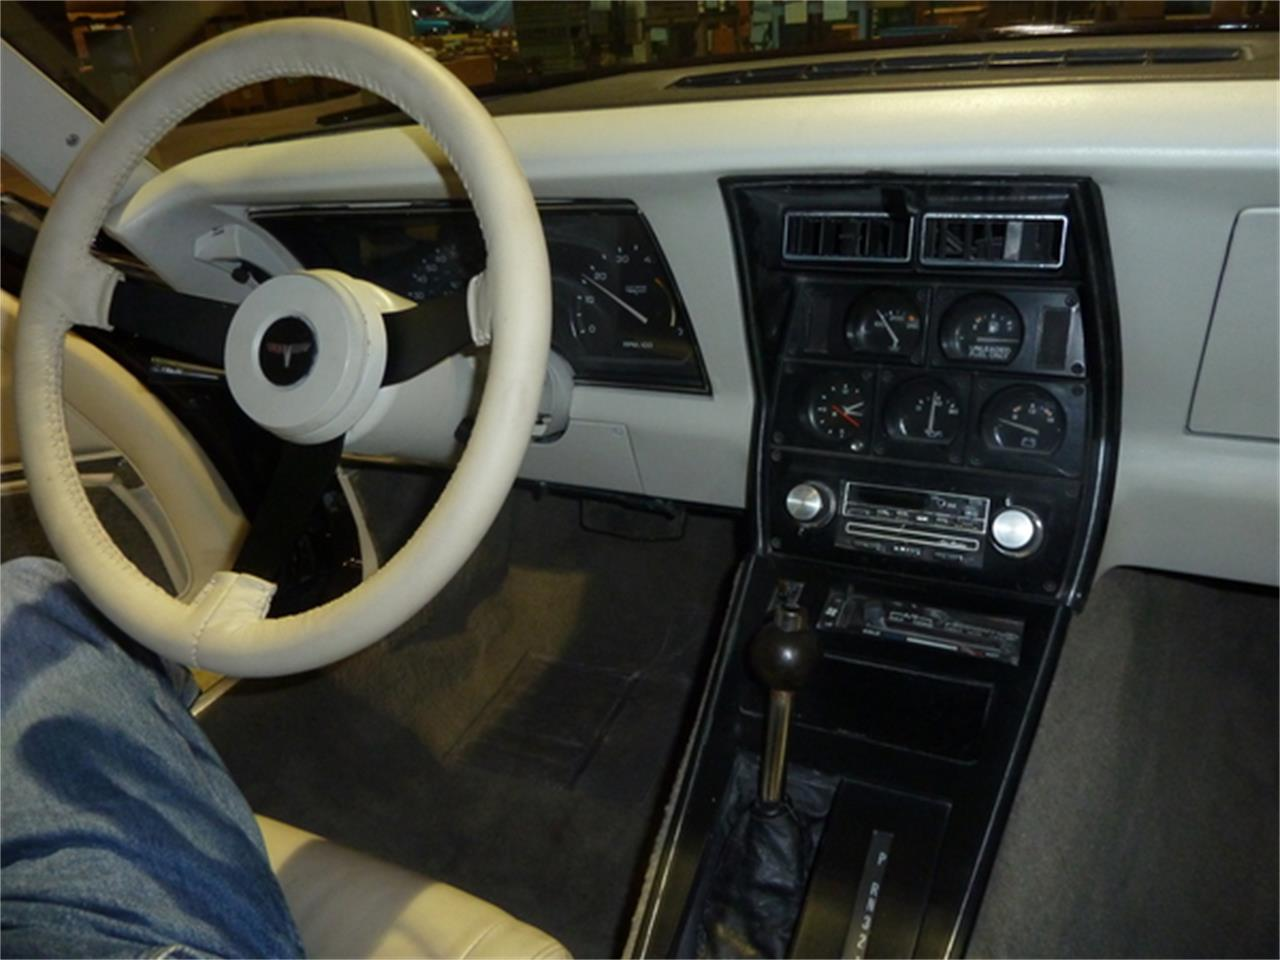 Large Picture of '80 Chevrolet Corvette located in Fort Myers/ Macomb, MI Florida - $19,900.00 - J312